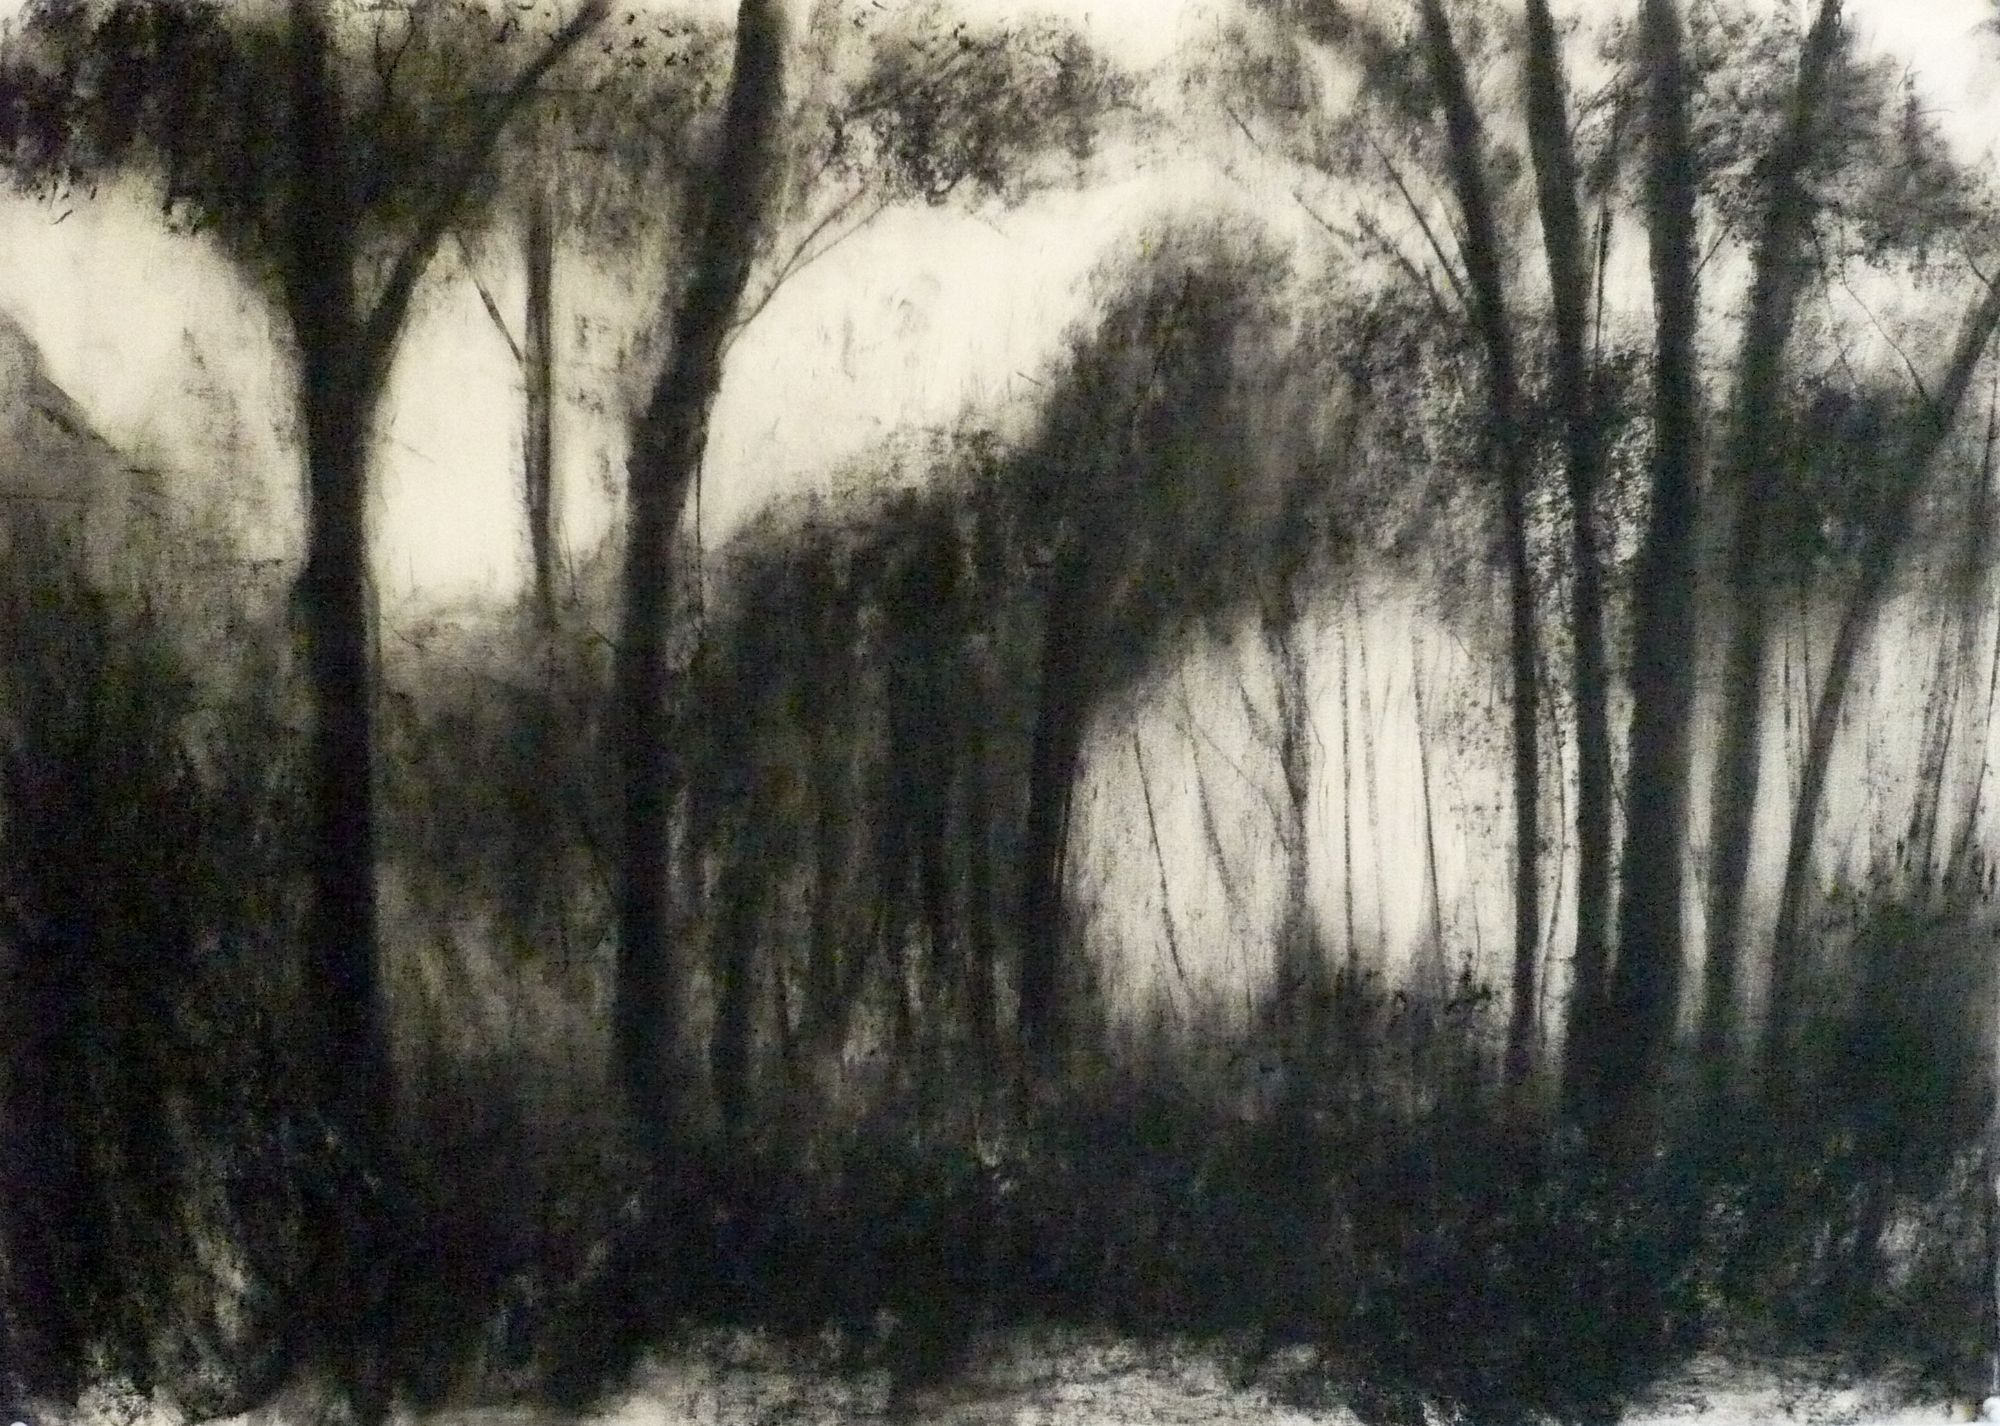 Maker Walk ENE #4 - Charcoal on Surrey cartridge paper (594 x 841 mm)